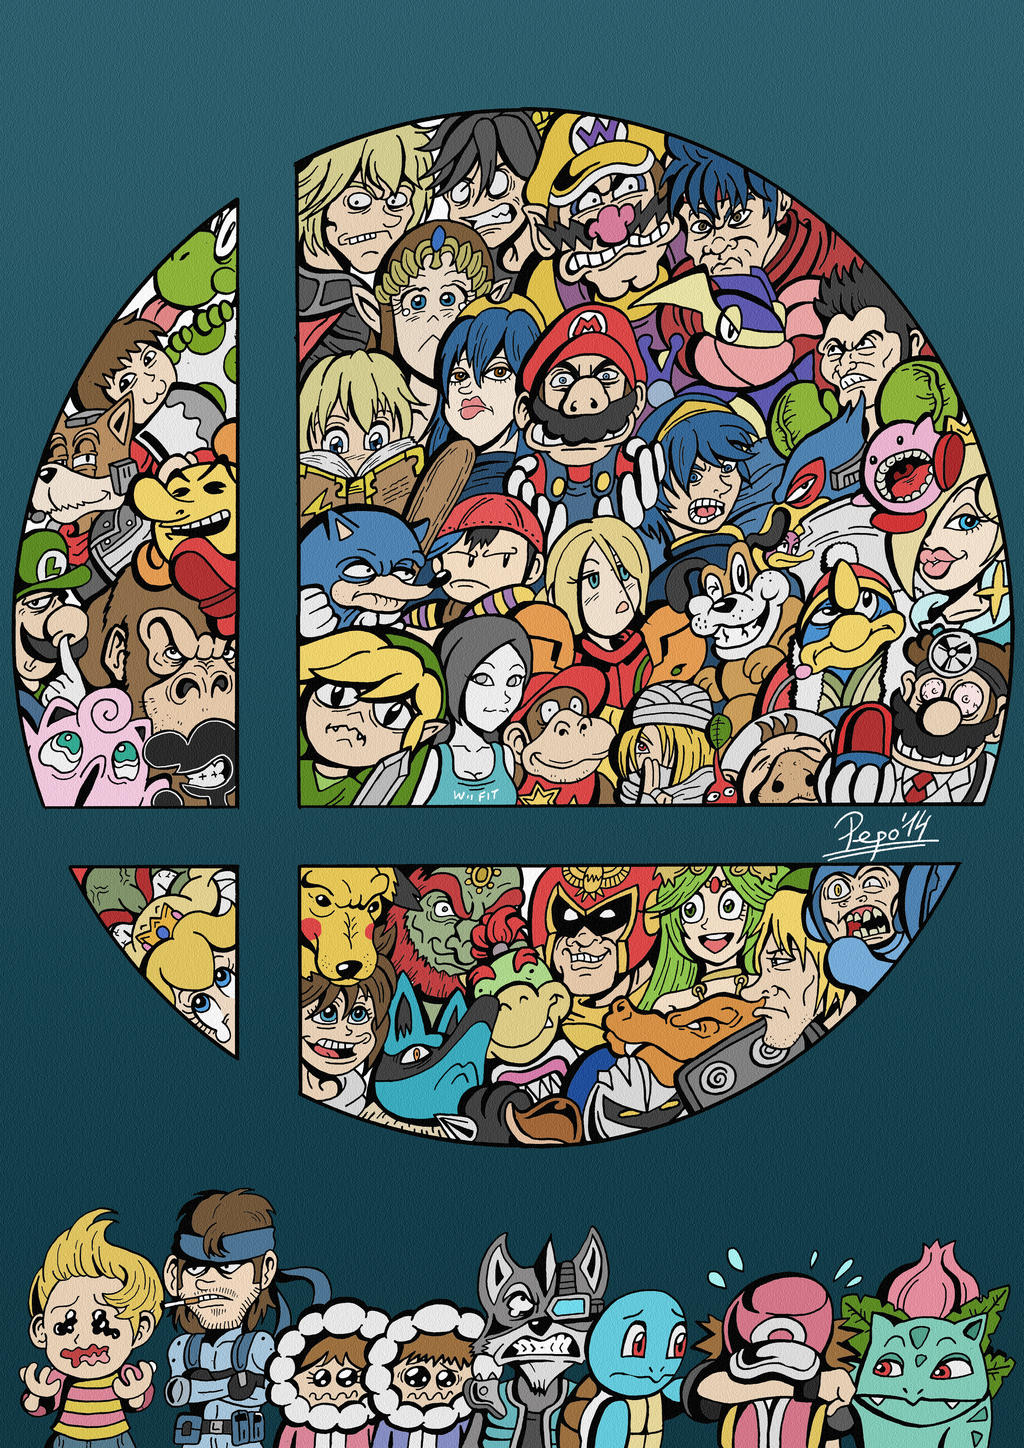 Super smash bros wii u by pepowned on deviantart - Console wii u super smash bros ...